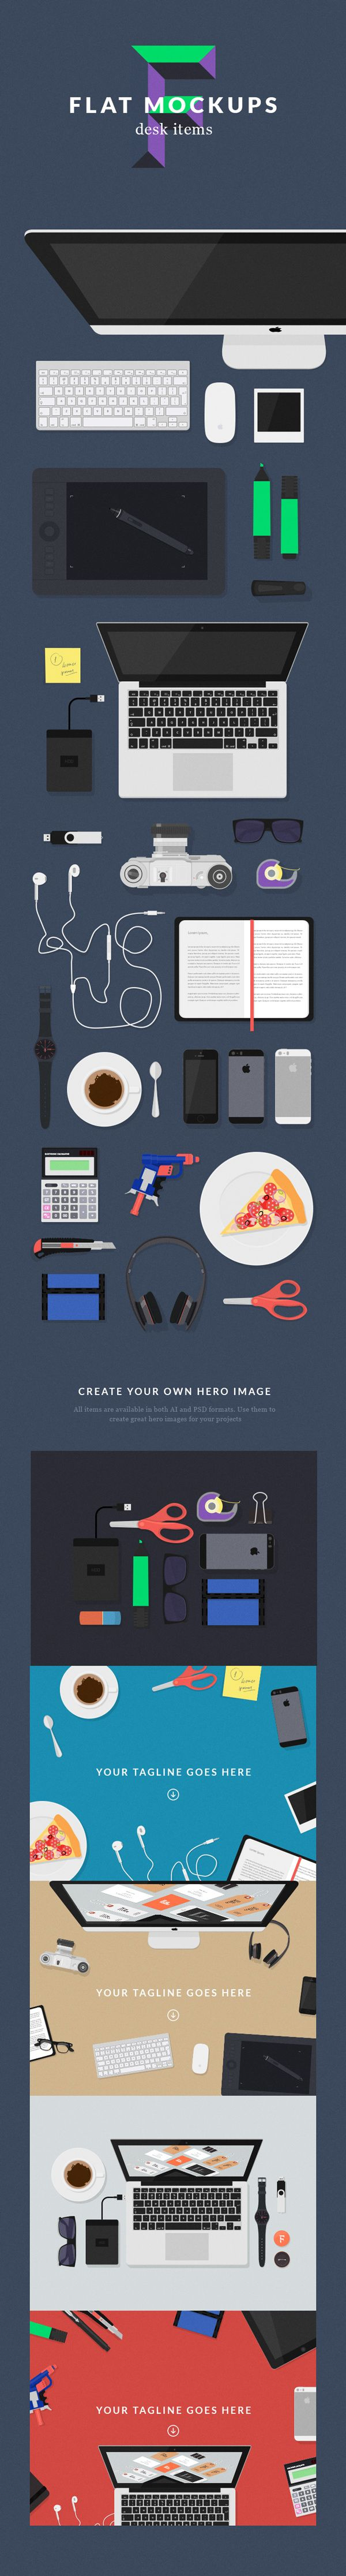 This is the second part of the flat mock-ups, a new collection of desk items to help youcreate great hero images for your projects. Like the previou...